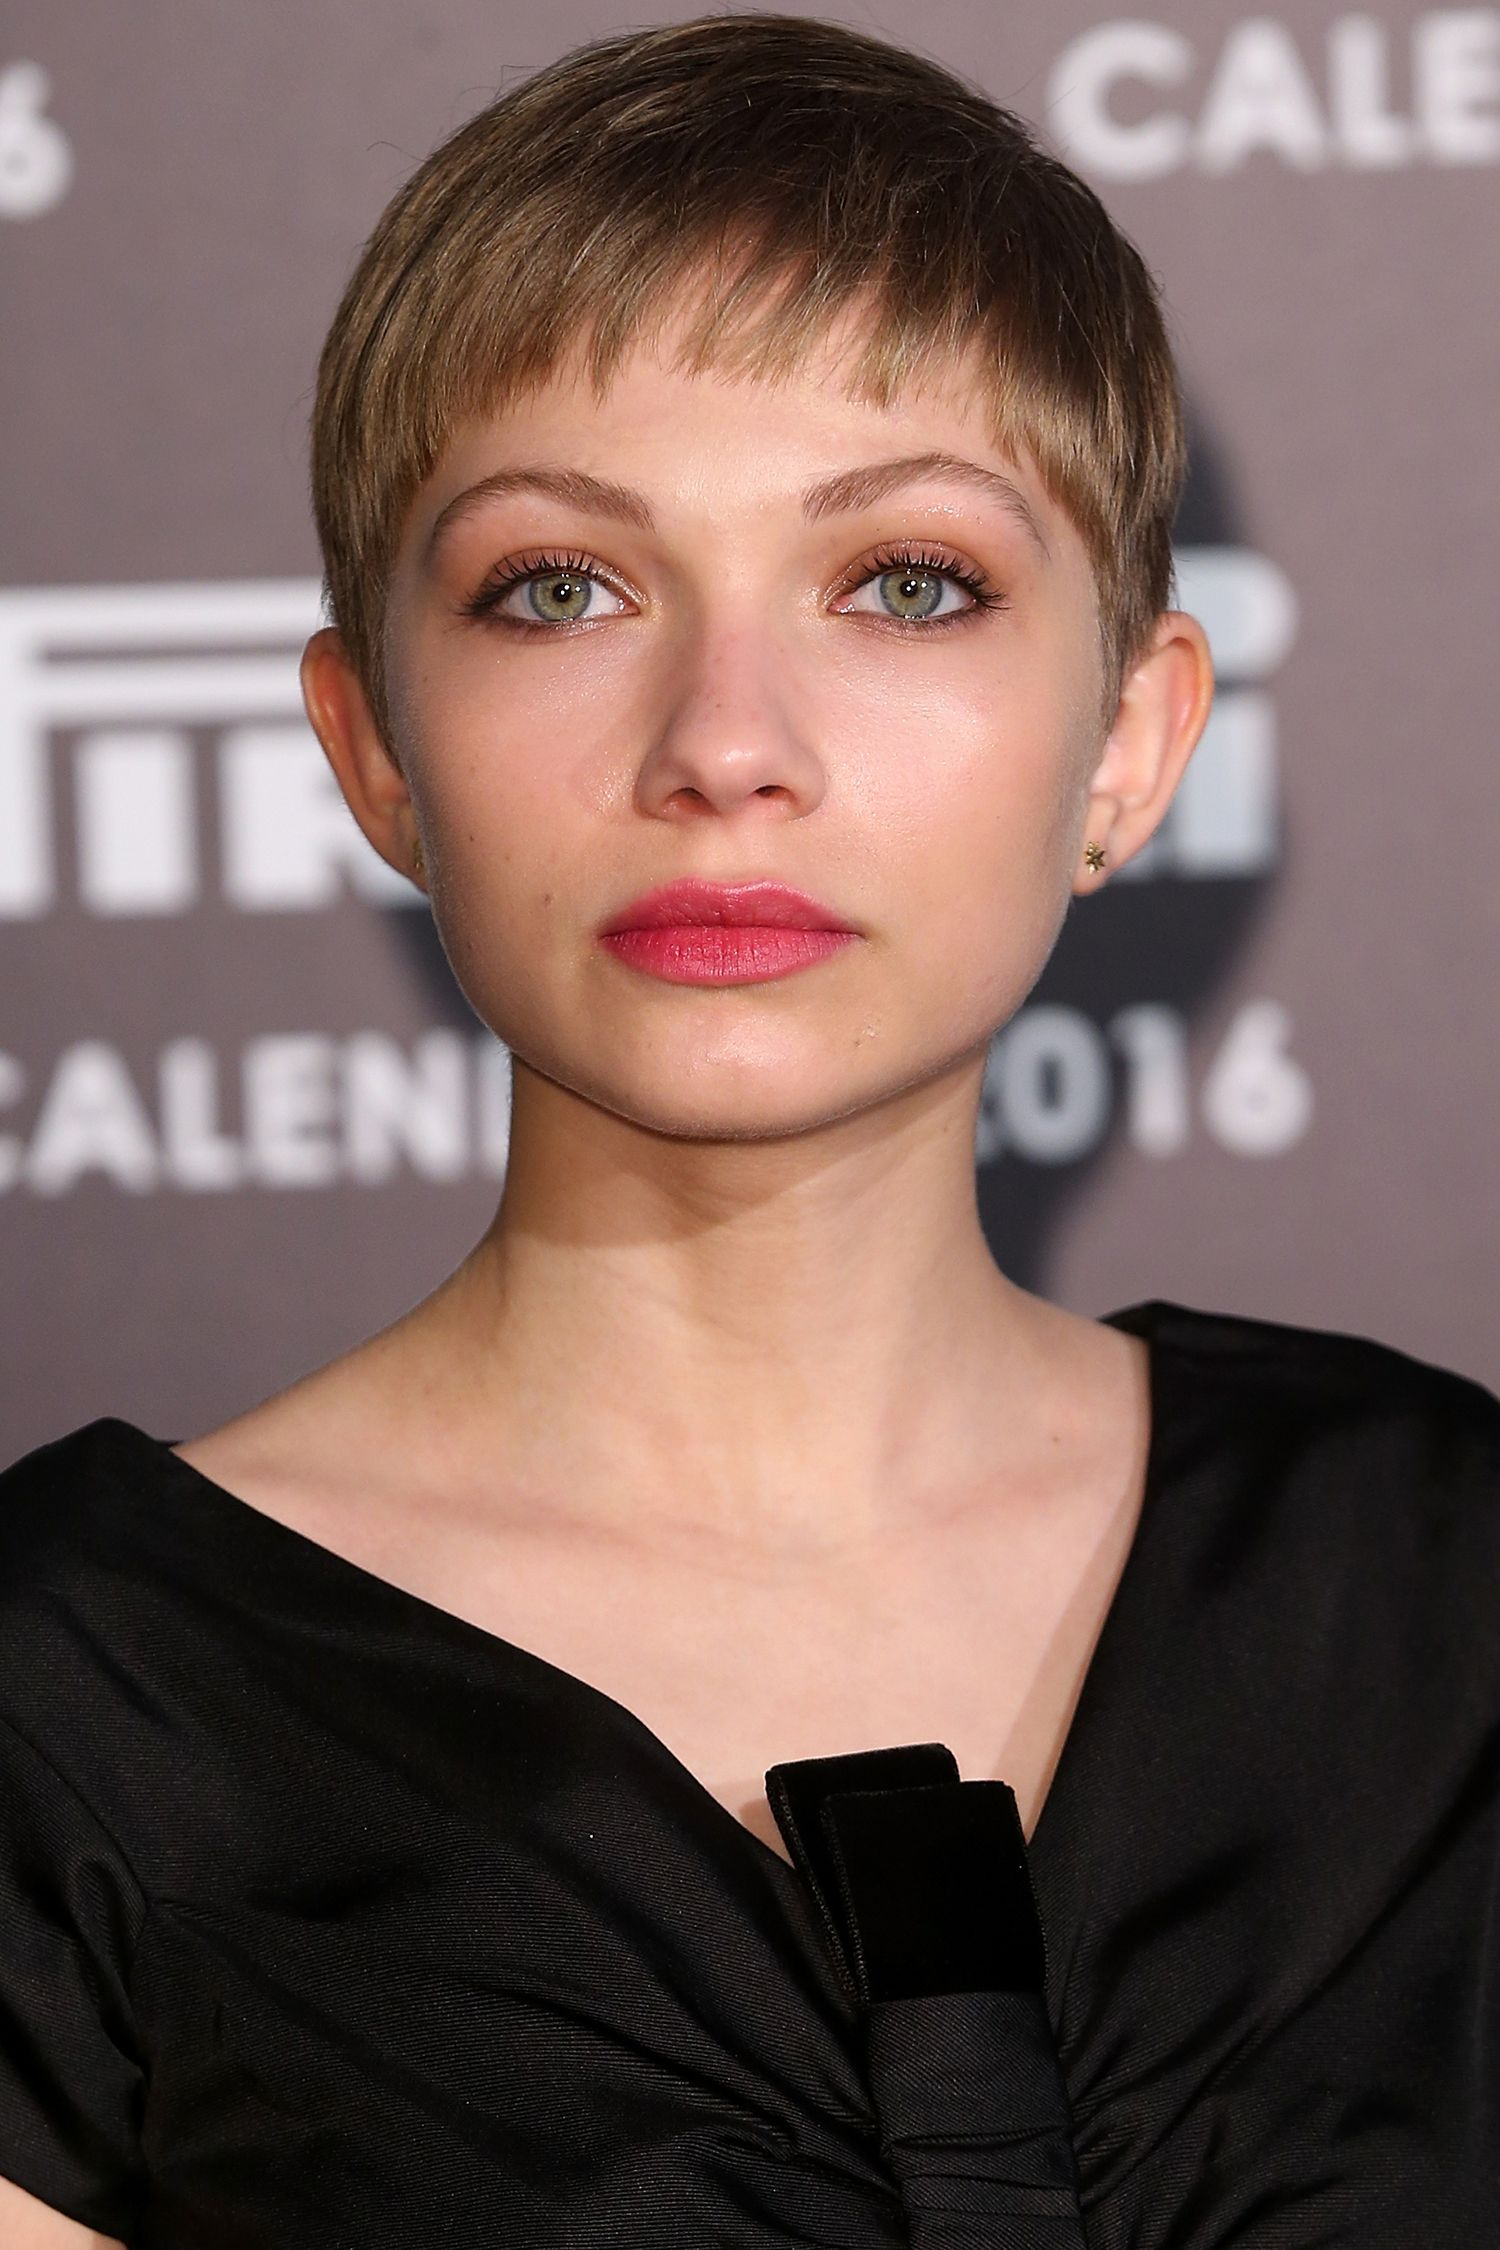 50 Pixie Cuts We Love For 2018 Short Pixie Hairstyles From